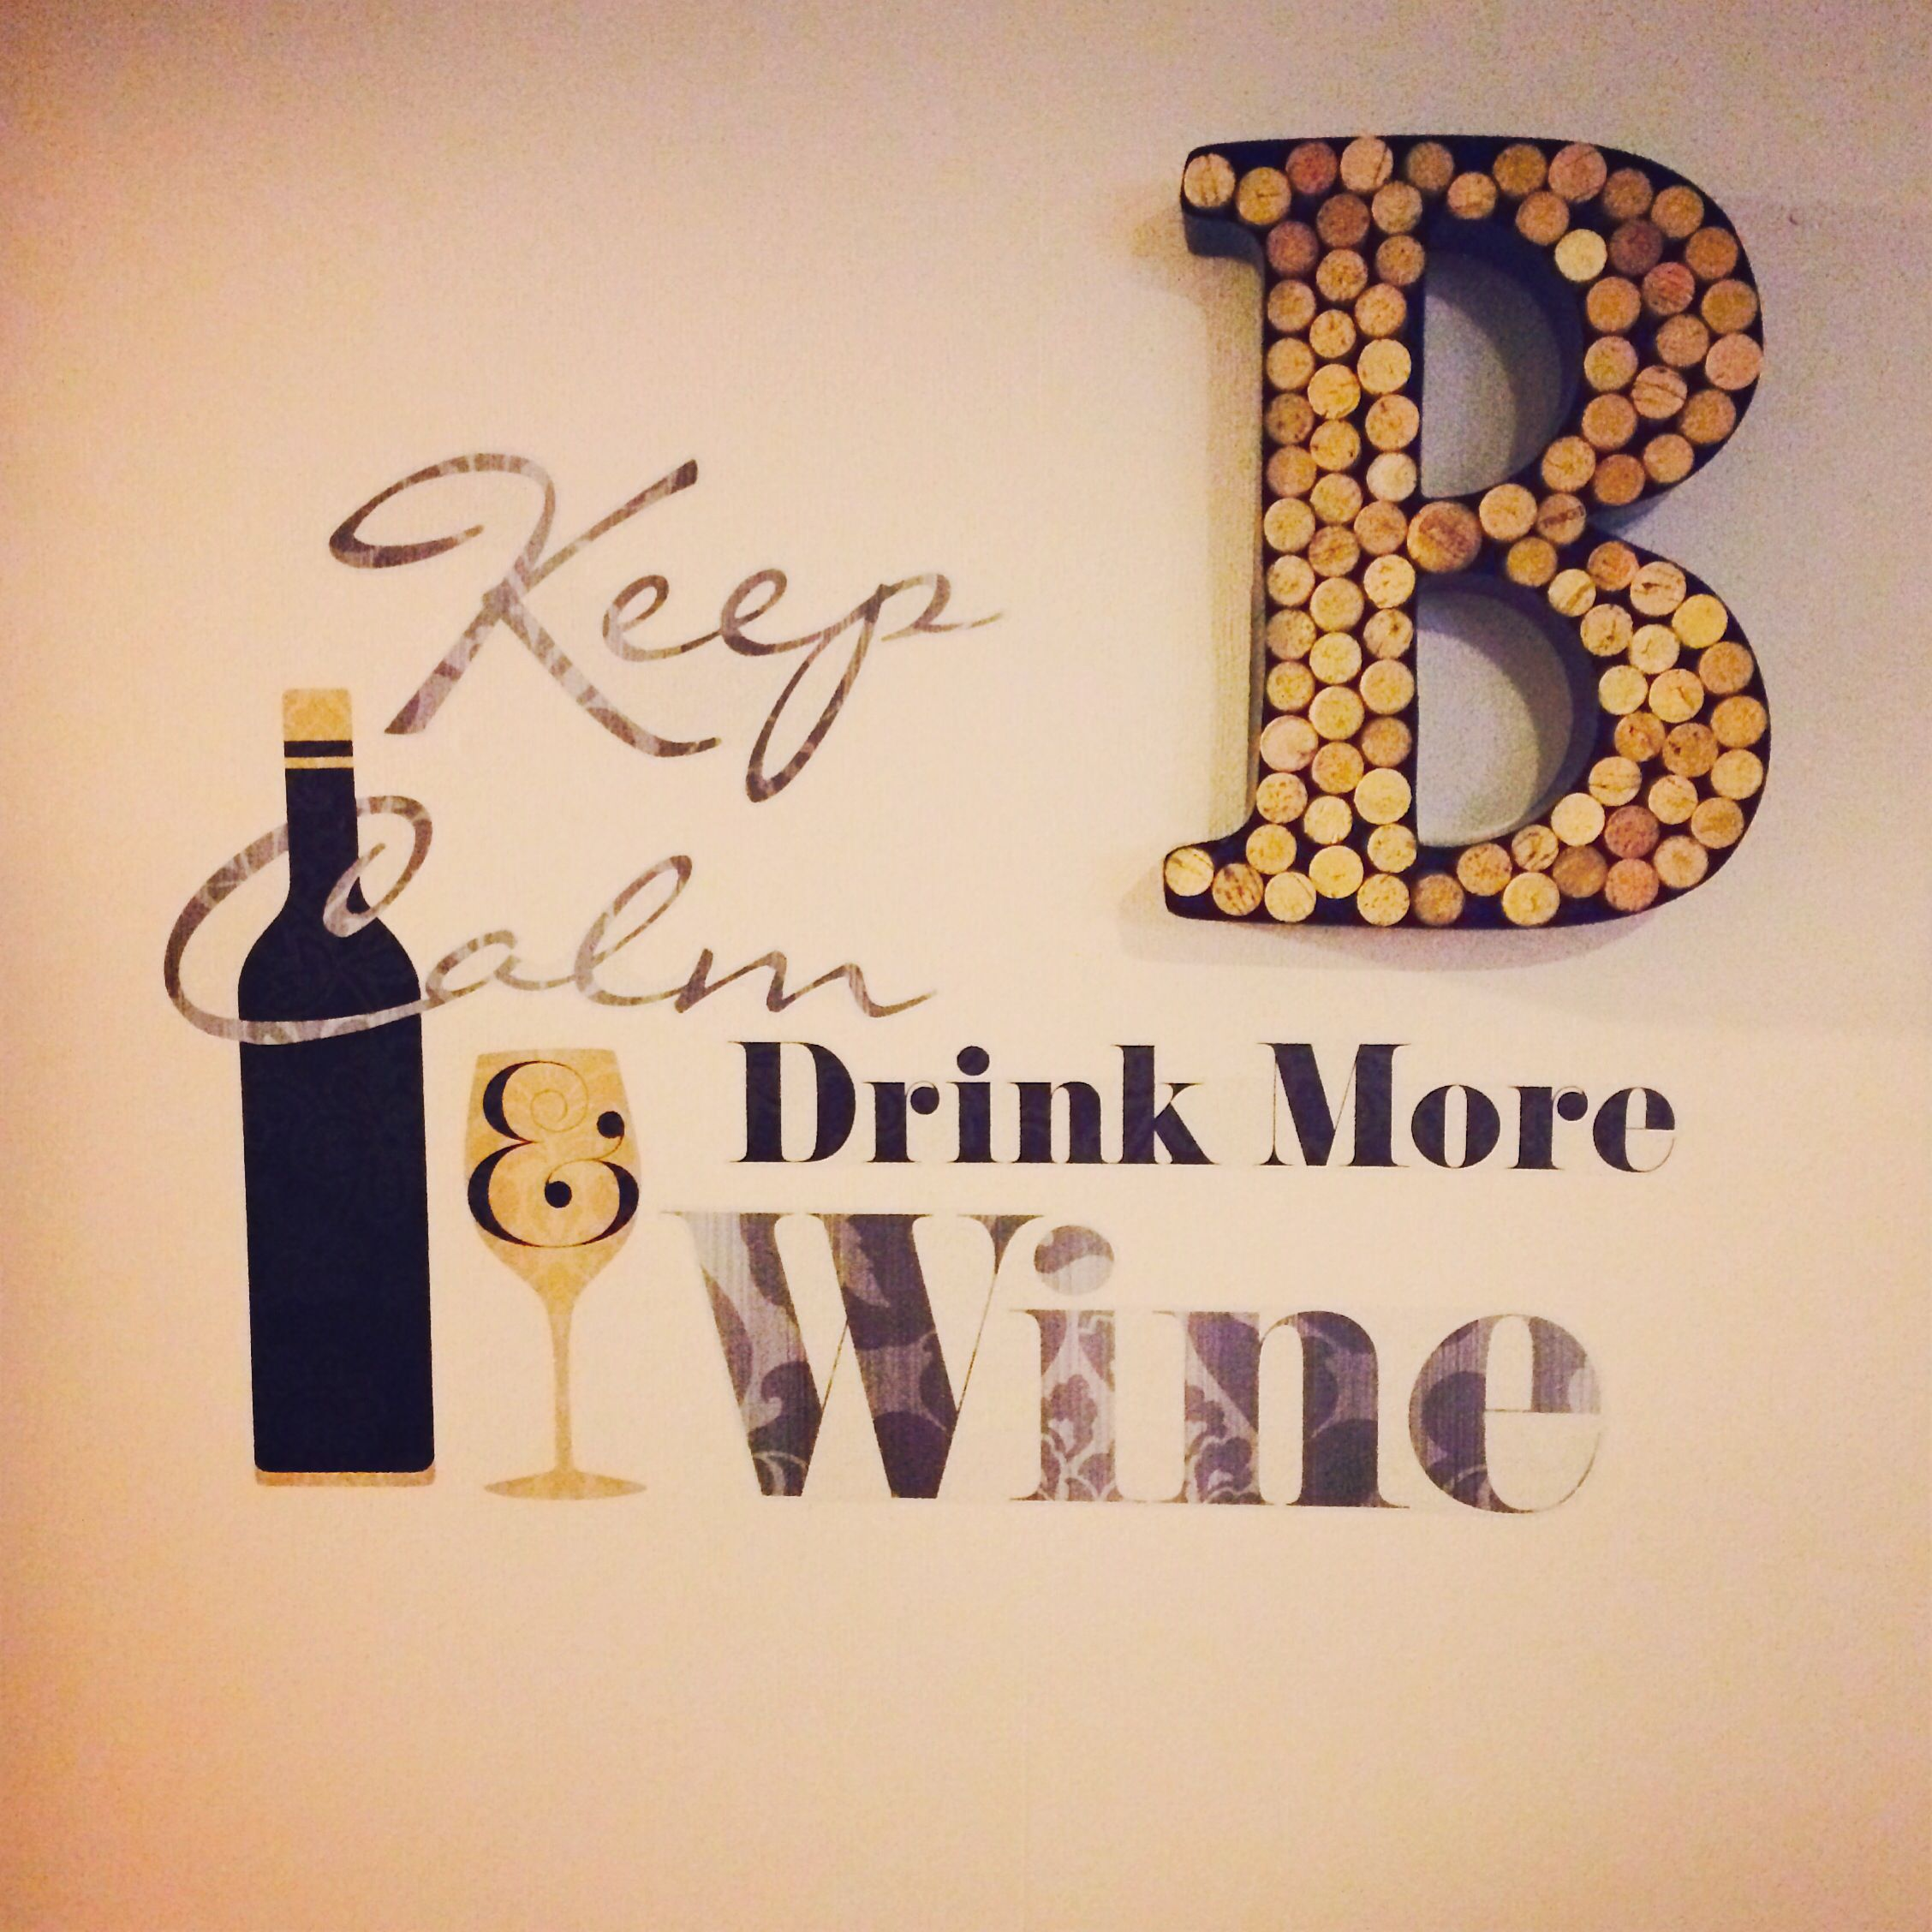 For wine lovers... Some cute and crafty wall decor!